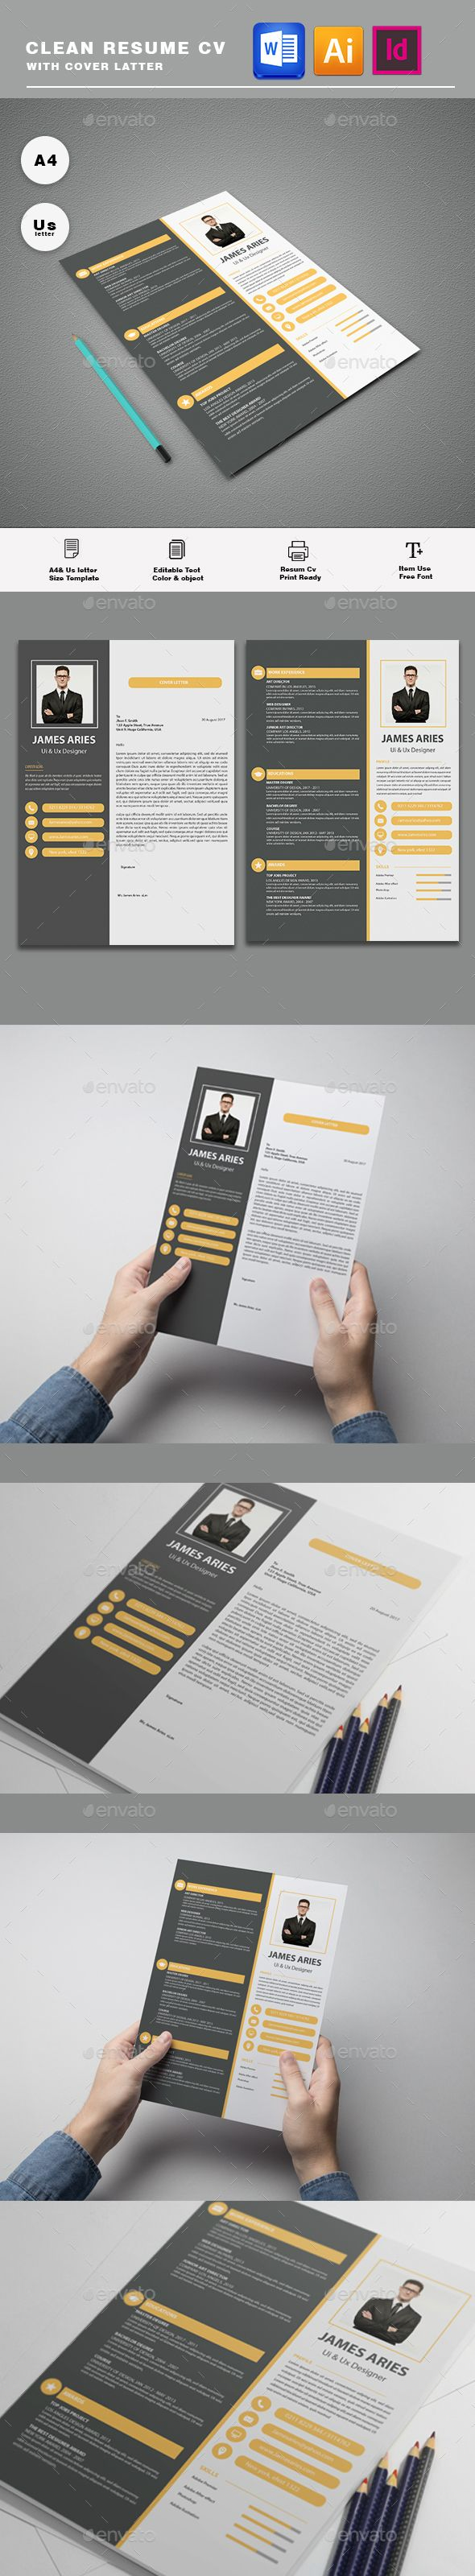 Resume #cv #professional  • Download here → https://graphicriver.net/item/resume/20888956?ref=pxcr